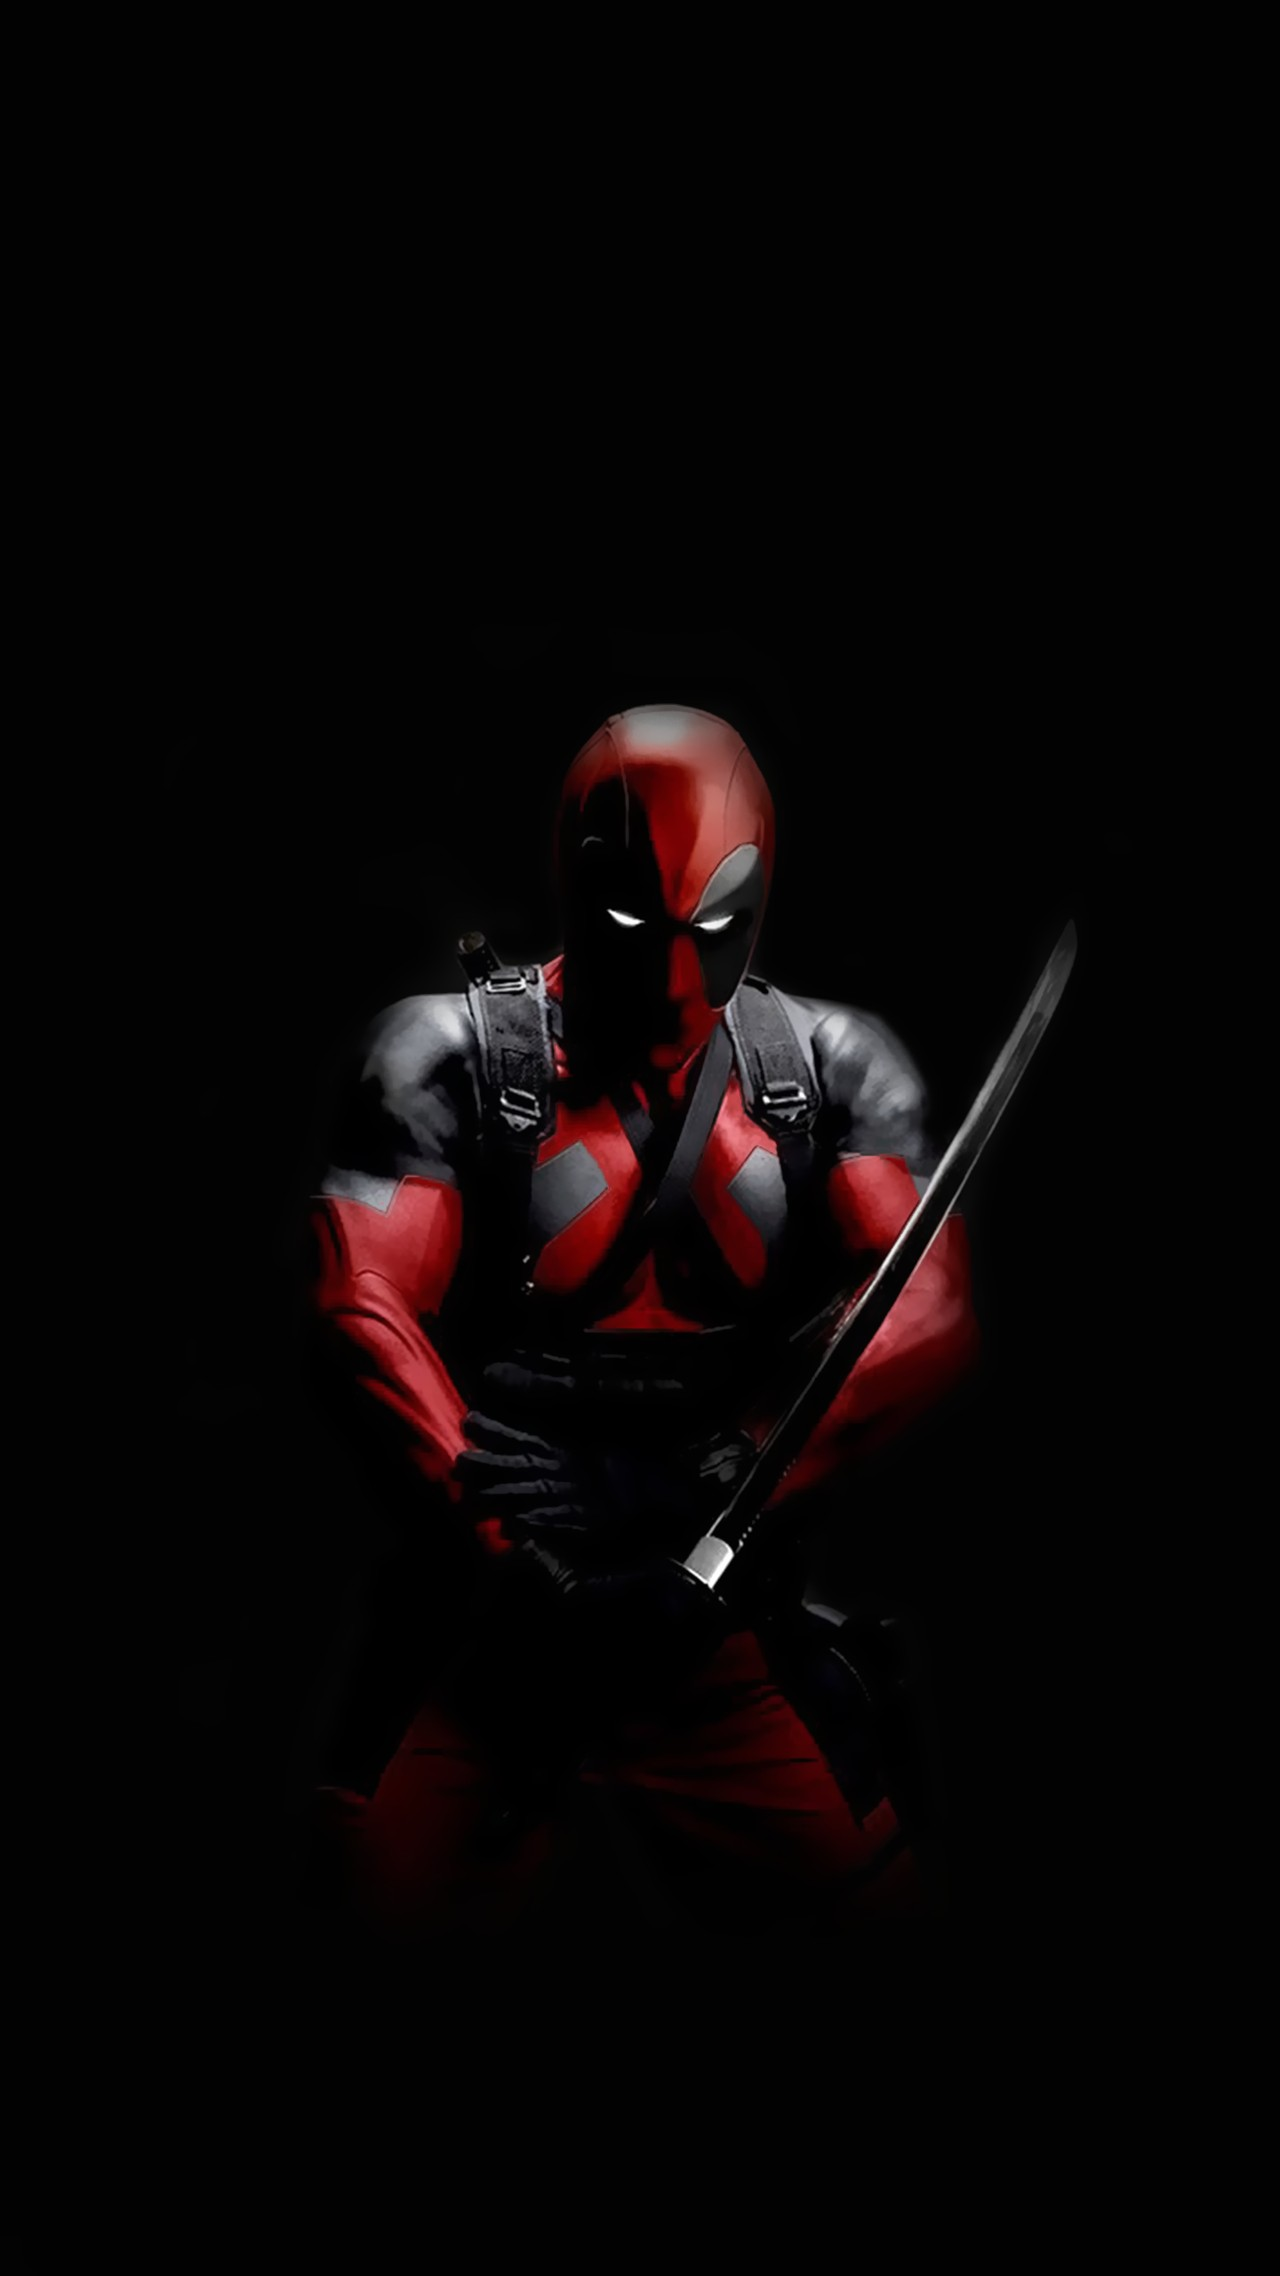 Deadpool HD wallpaper ·① Download free cool backgrounds ...